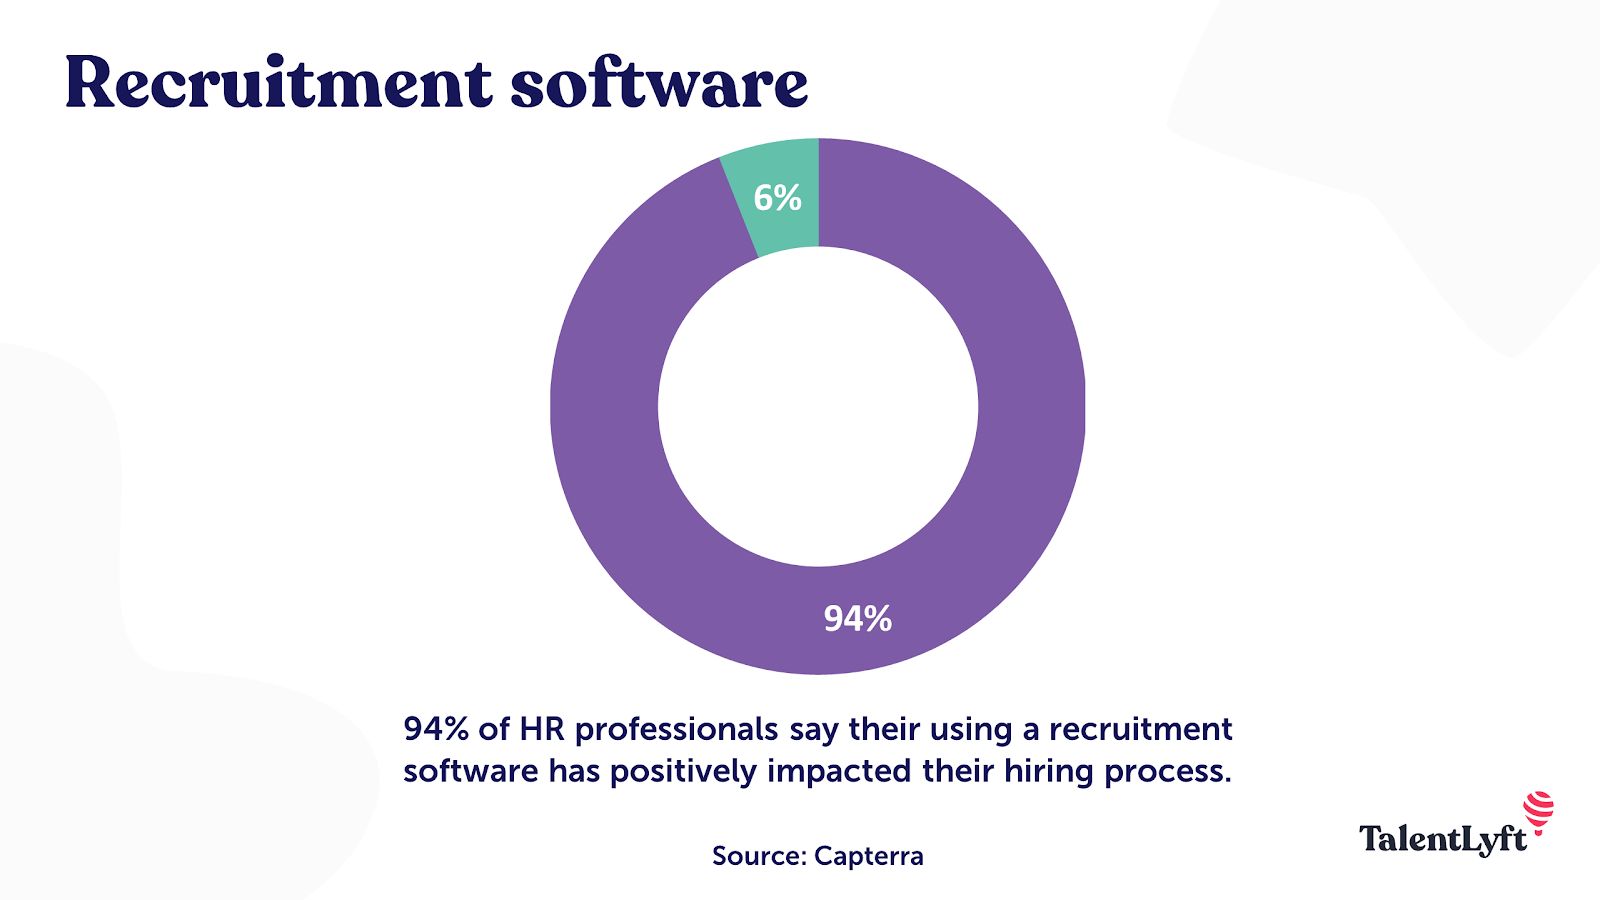 High volume recruitment - only possible with recruitment software